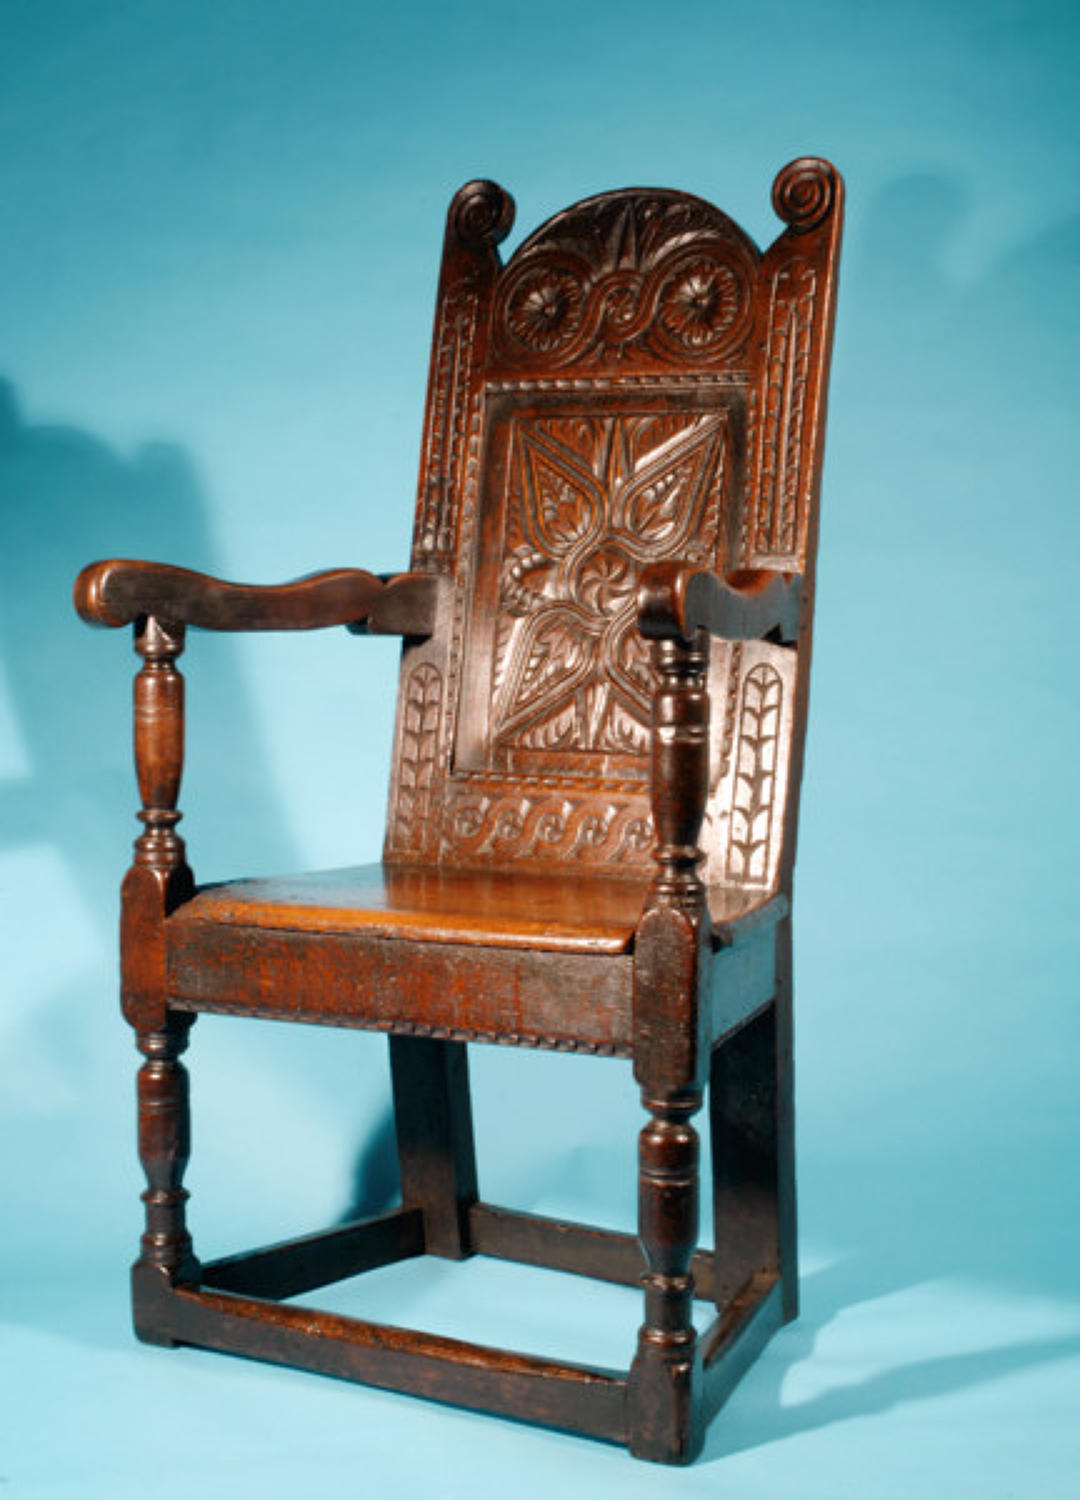 17thc Oak Wainscot Chair.  English. C1640-60